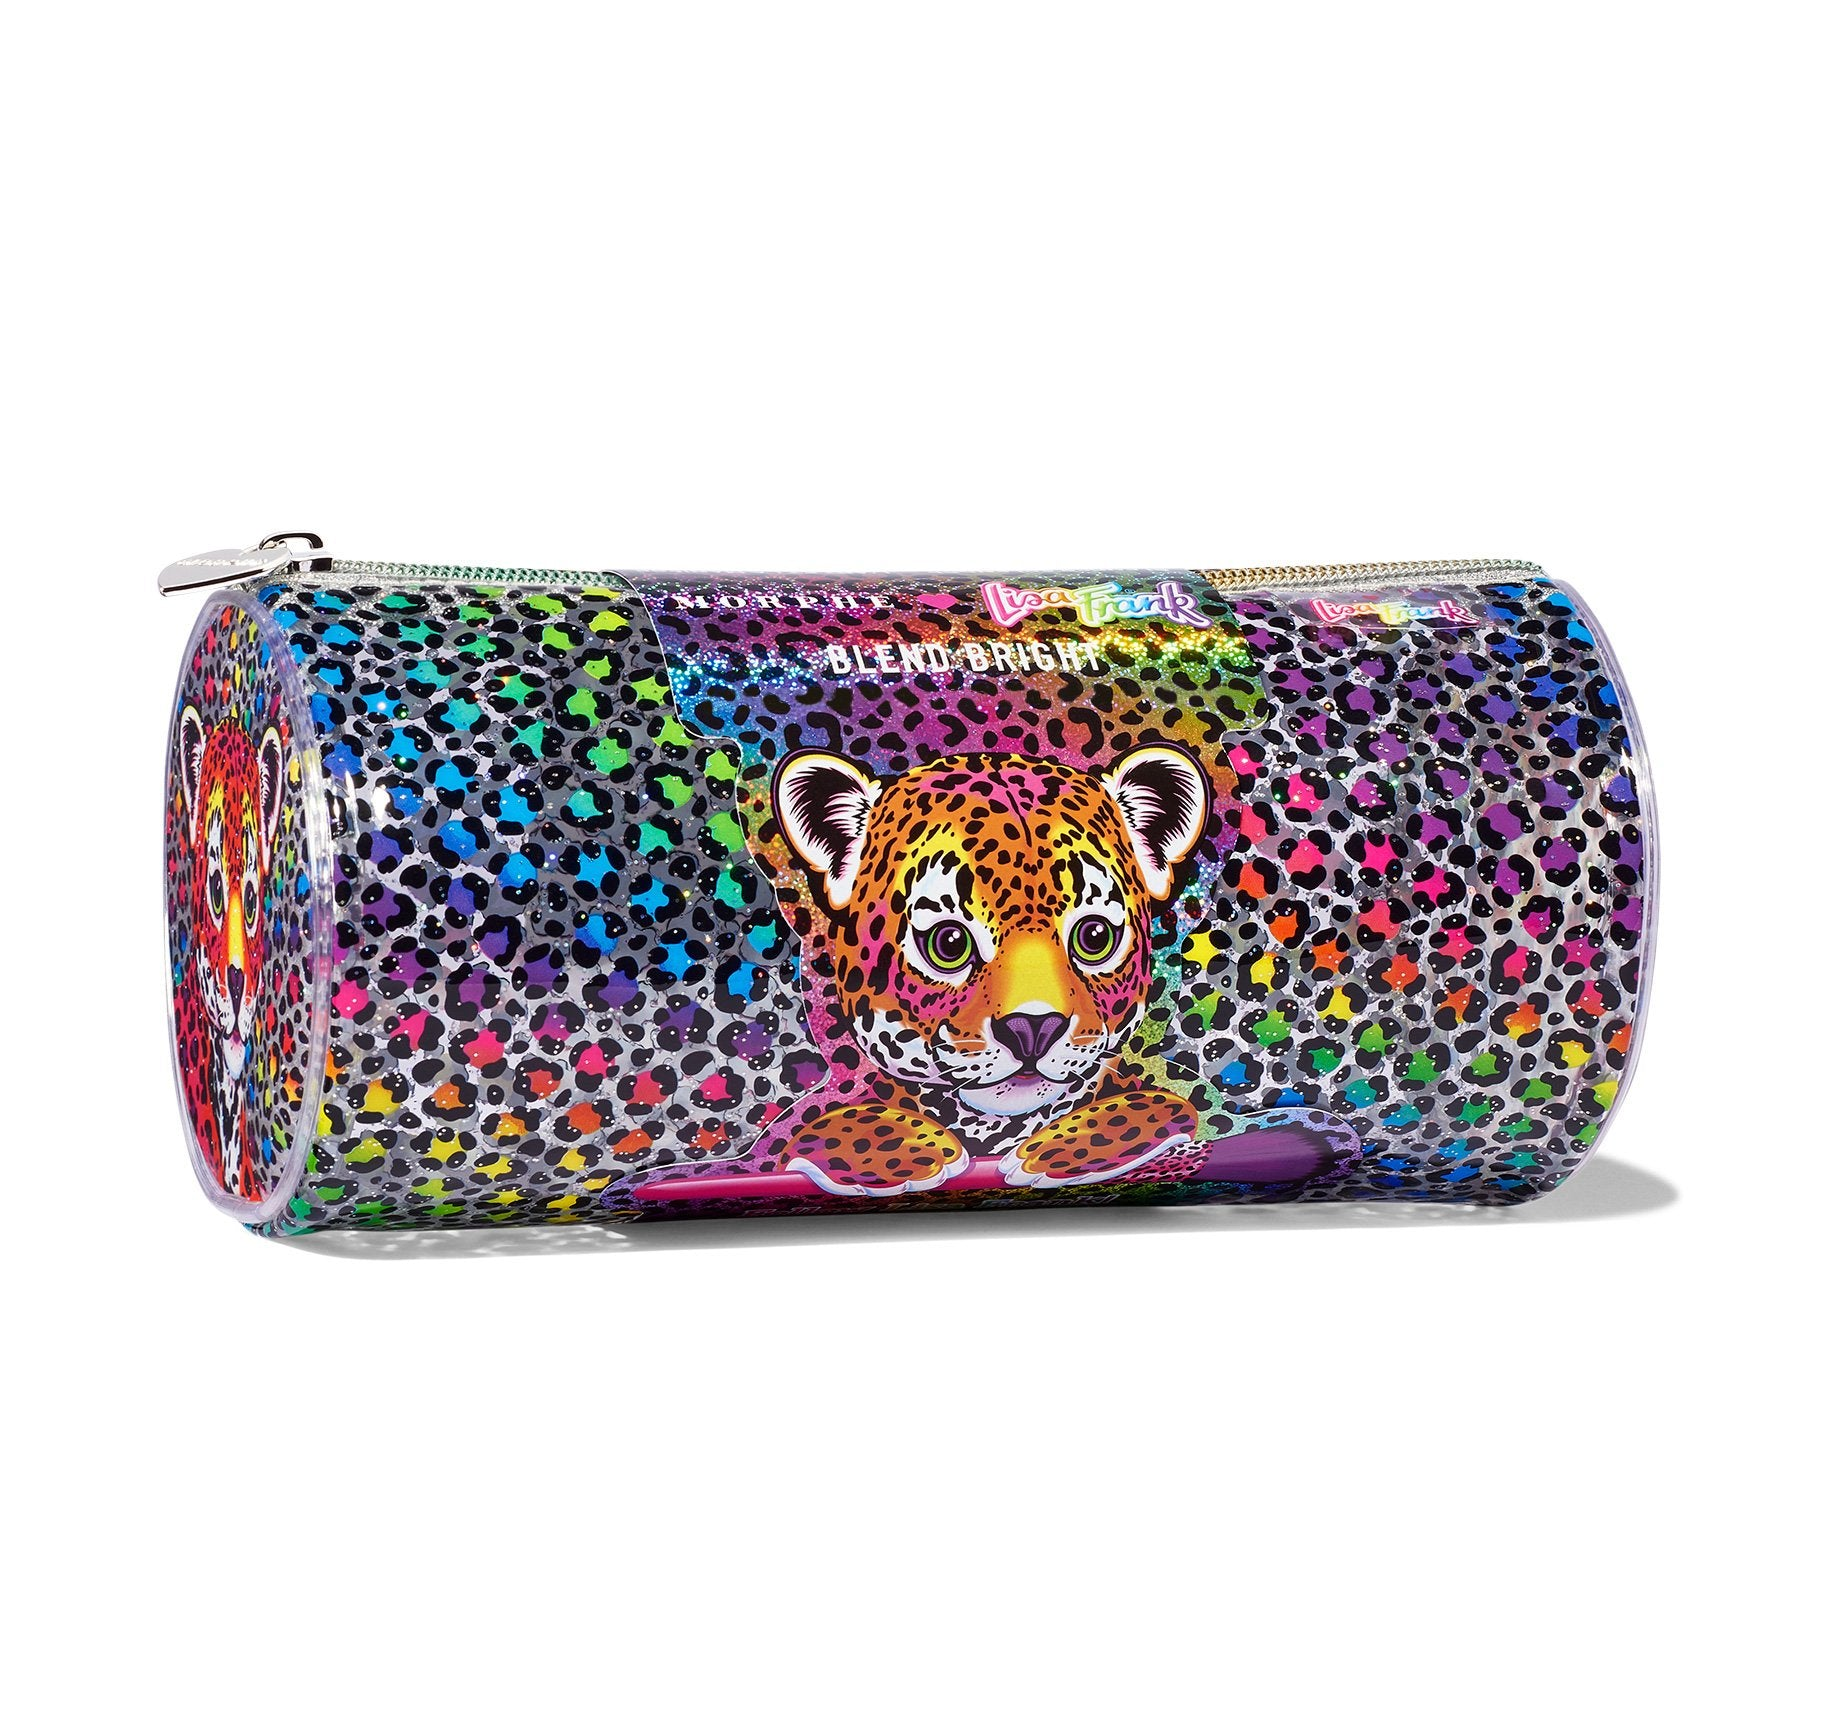 MORPHE X LISA FRANK BLEND BRIGHT BRUSH BAG, view larger image